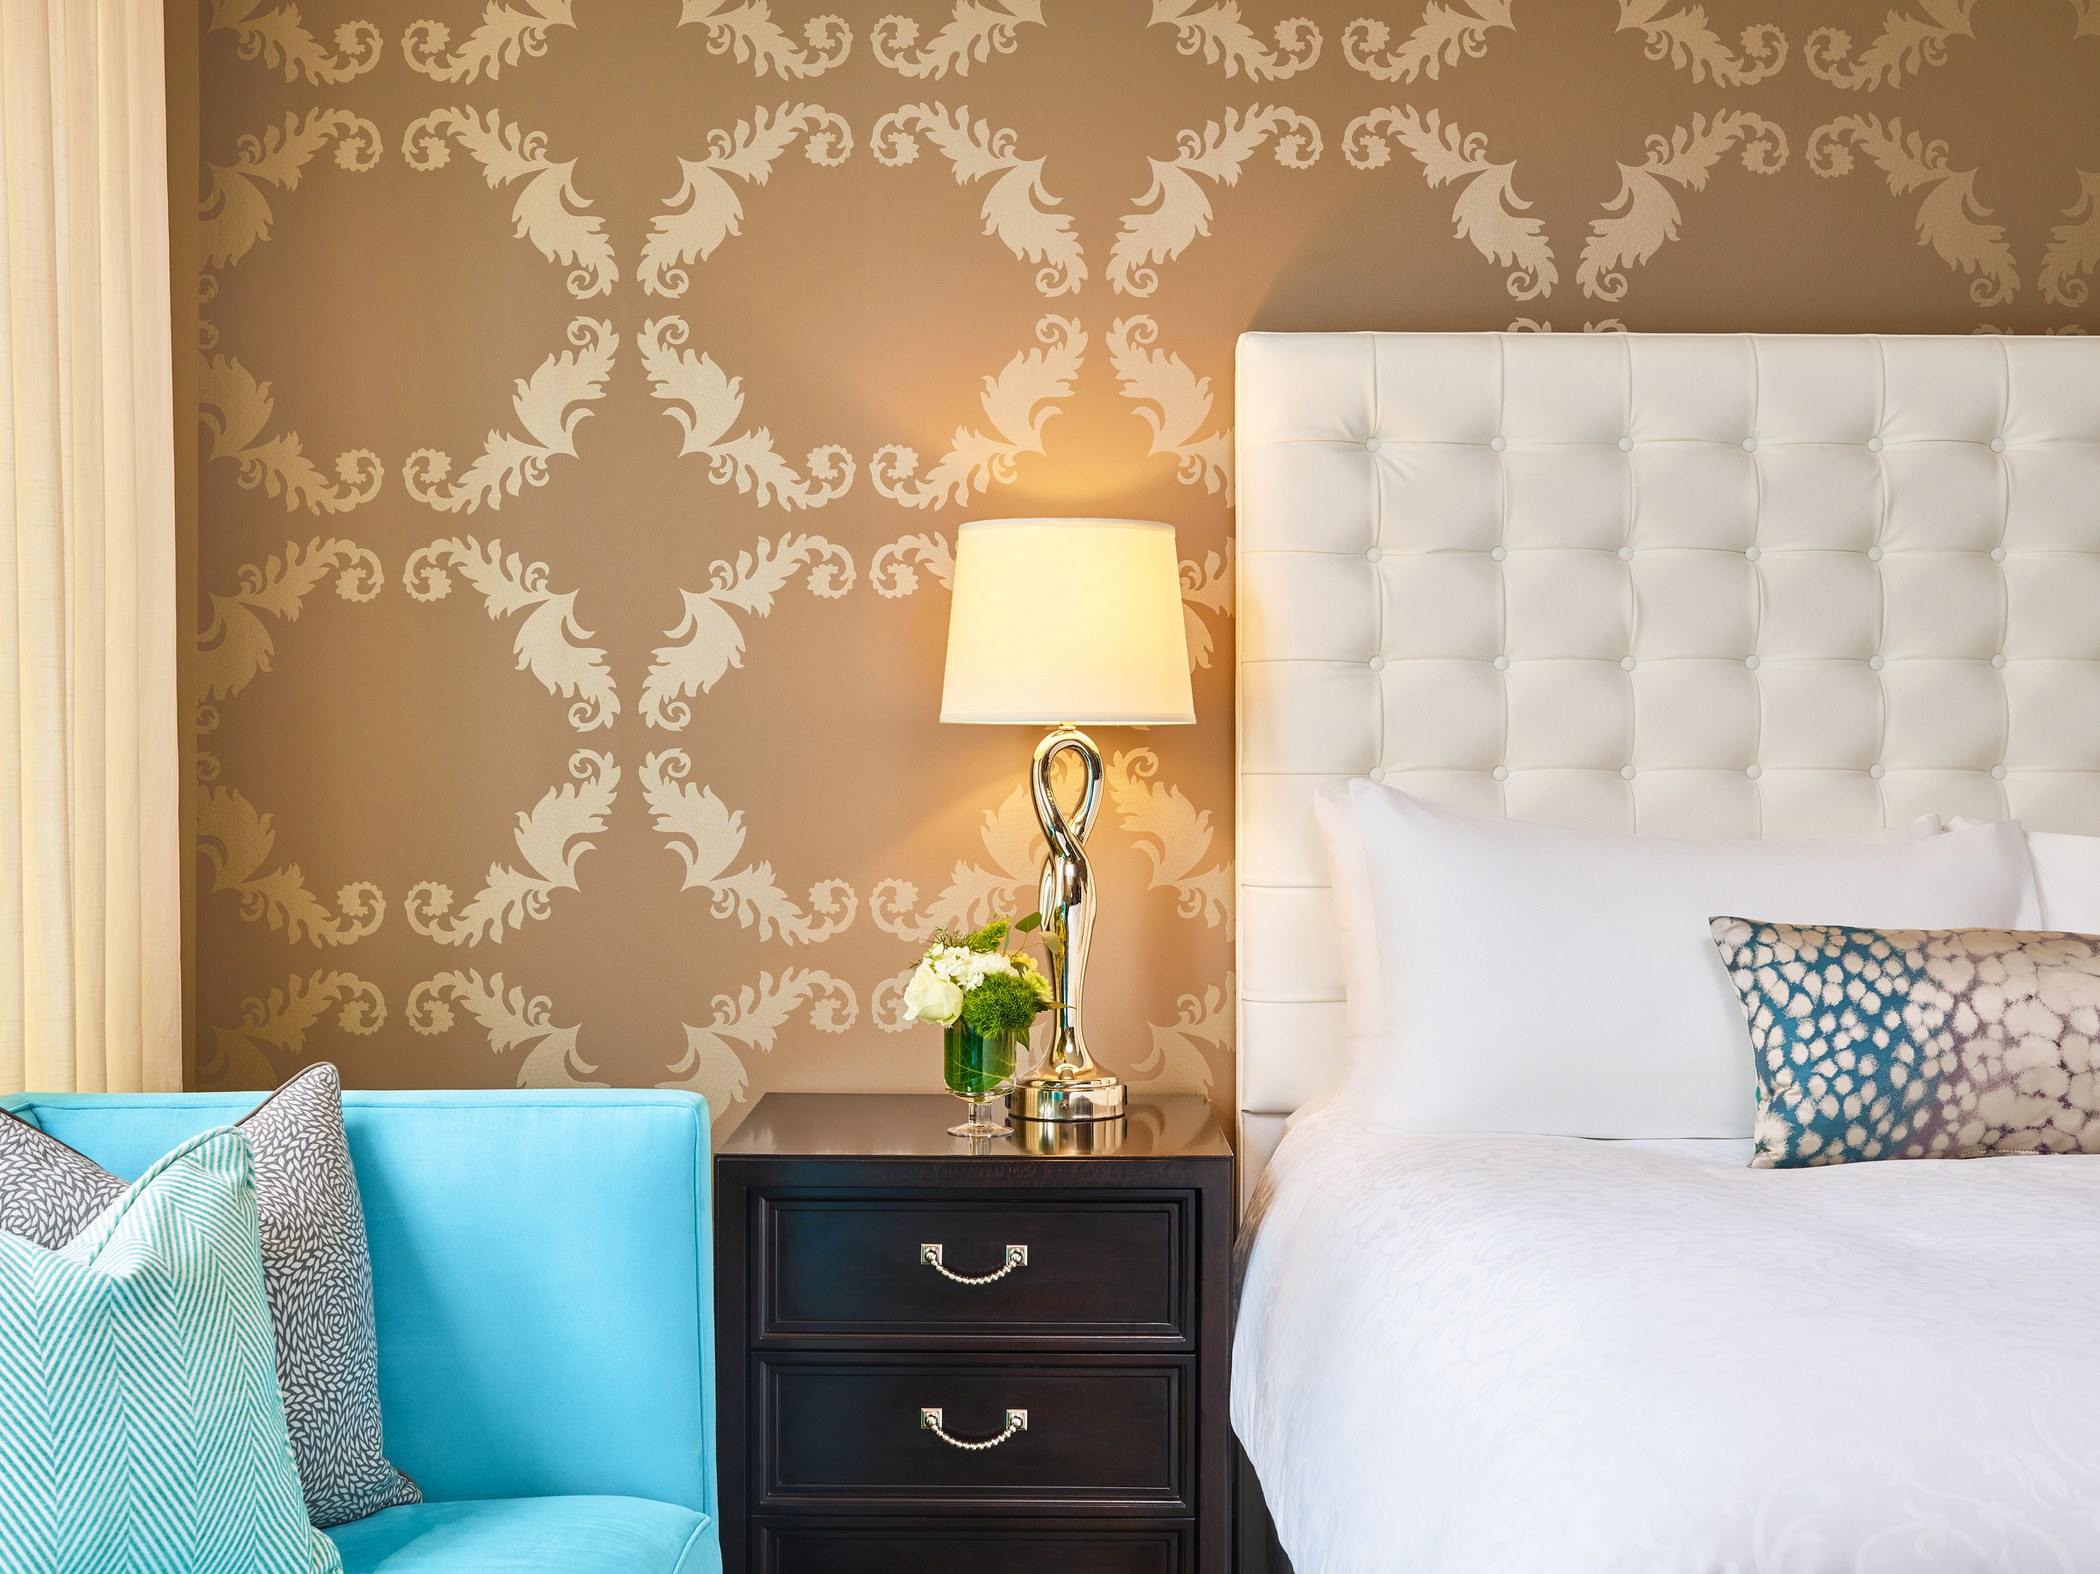 modern wallpaper and art inspired colours accent the nines hotel guest rooms